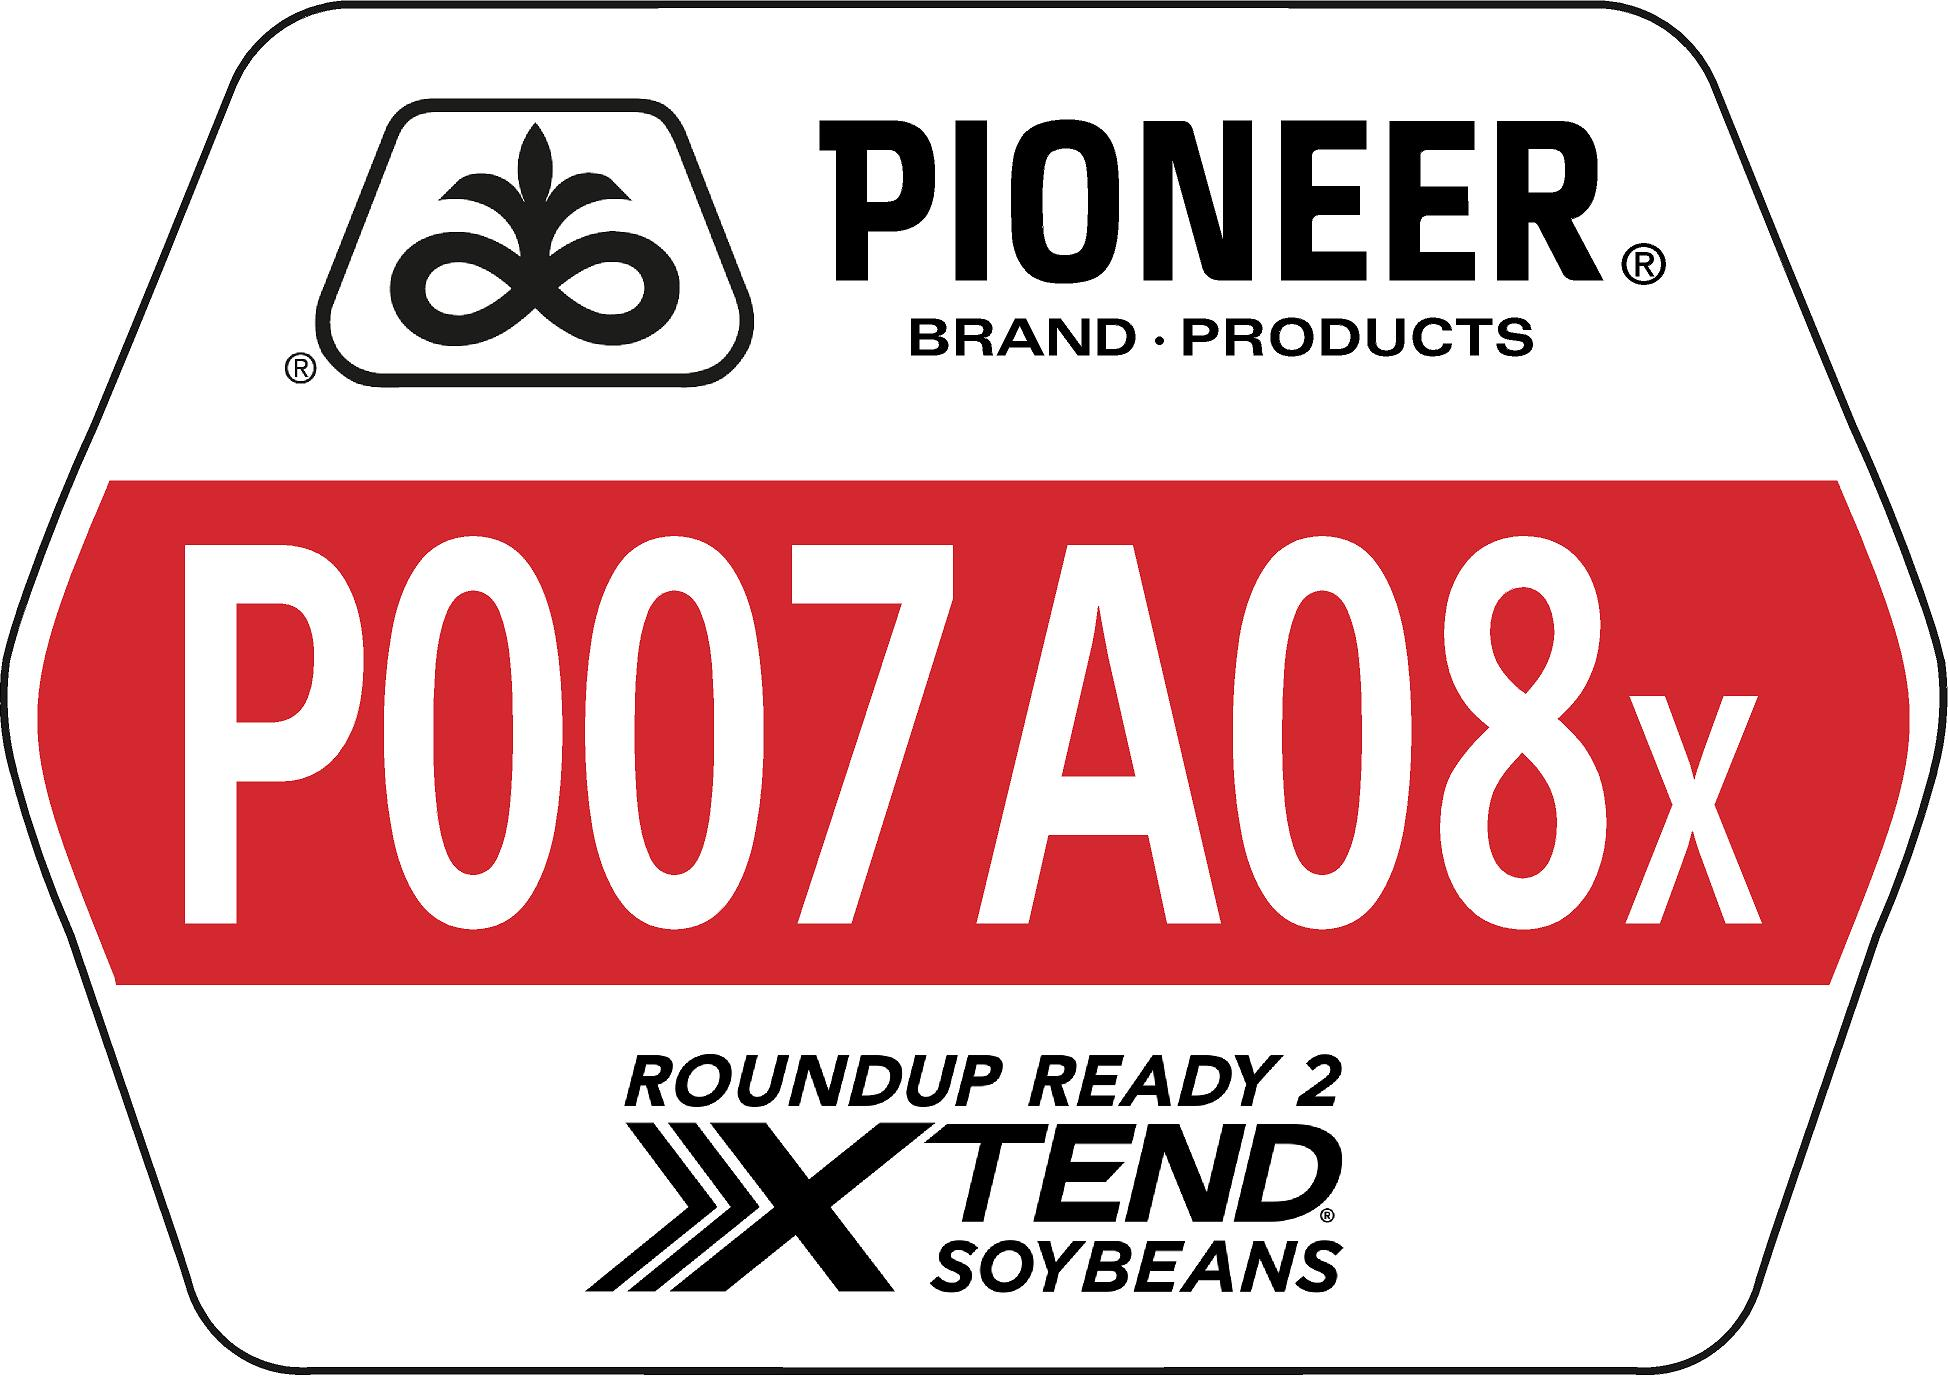 Field Signs - Soybeans - P007A08X